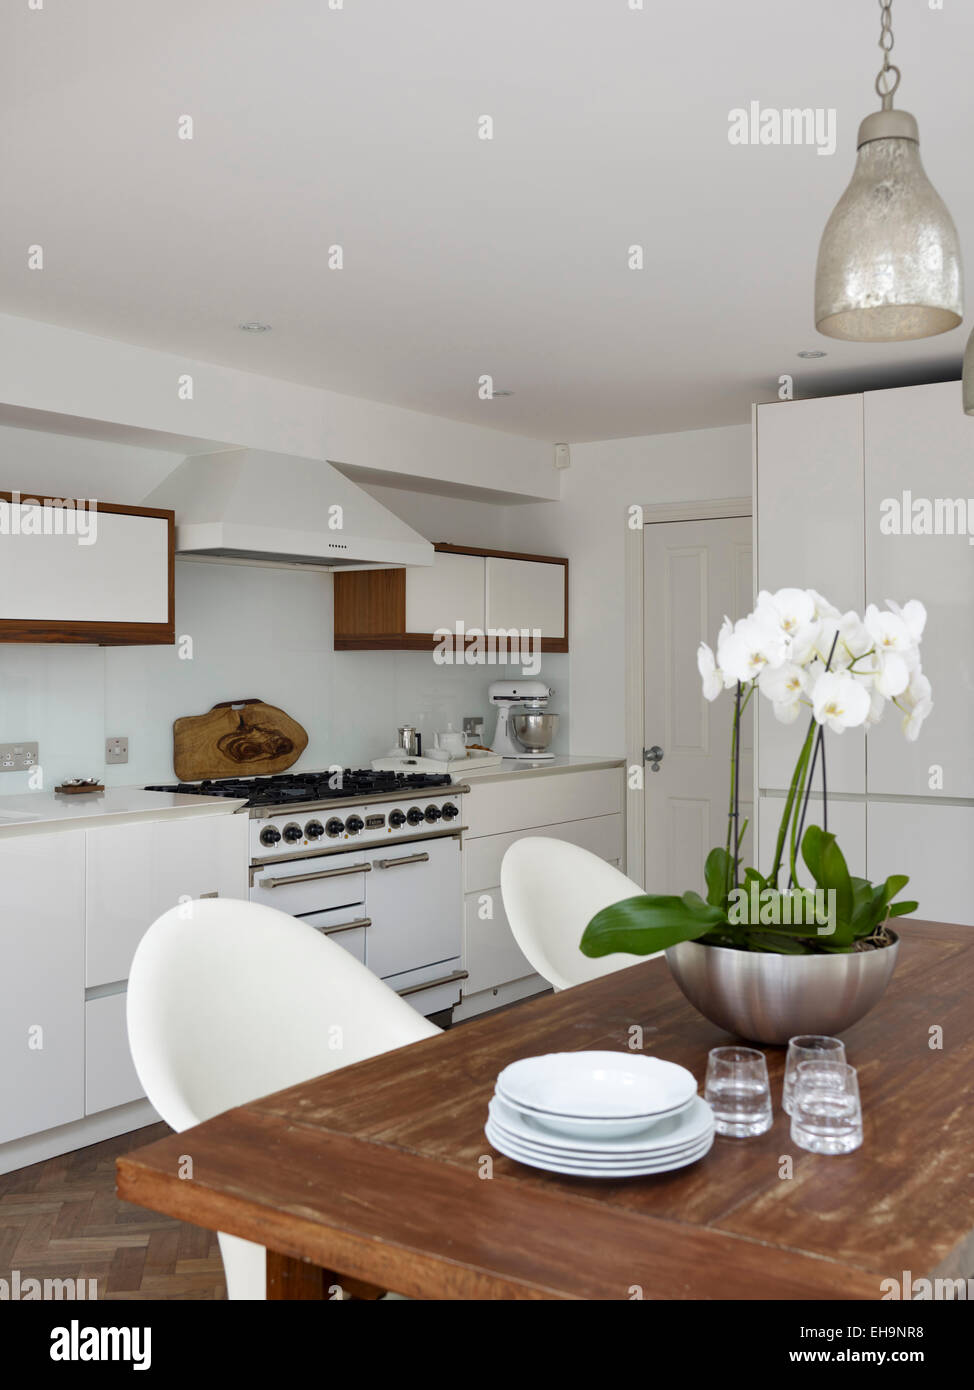 orchid on wooden table with pendant lighting in modern kitchen of